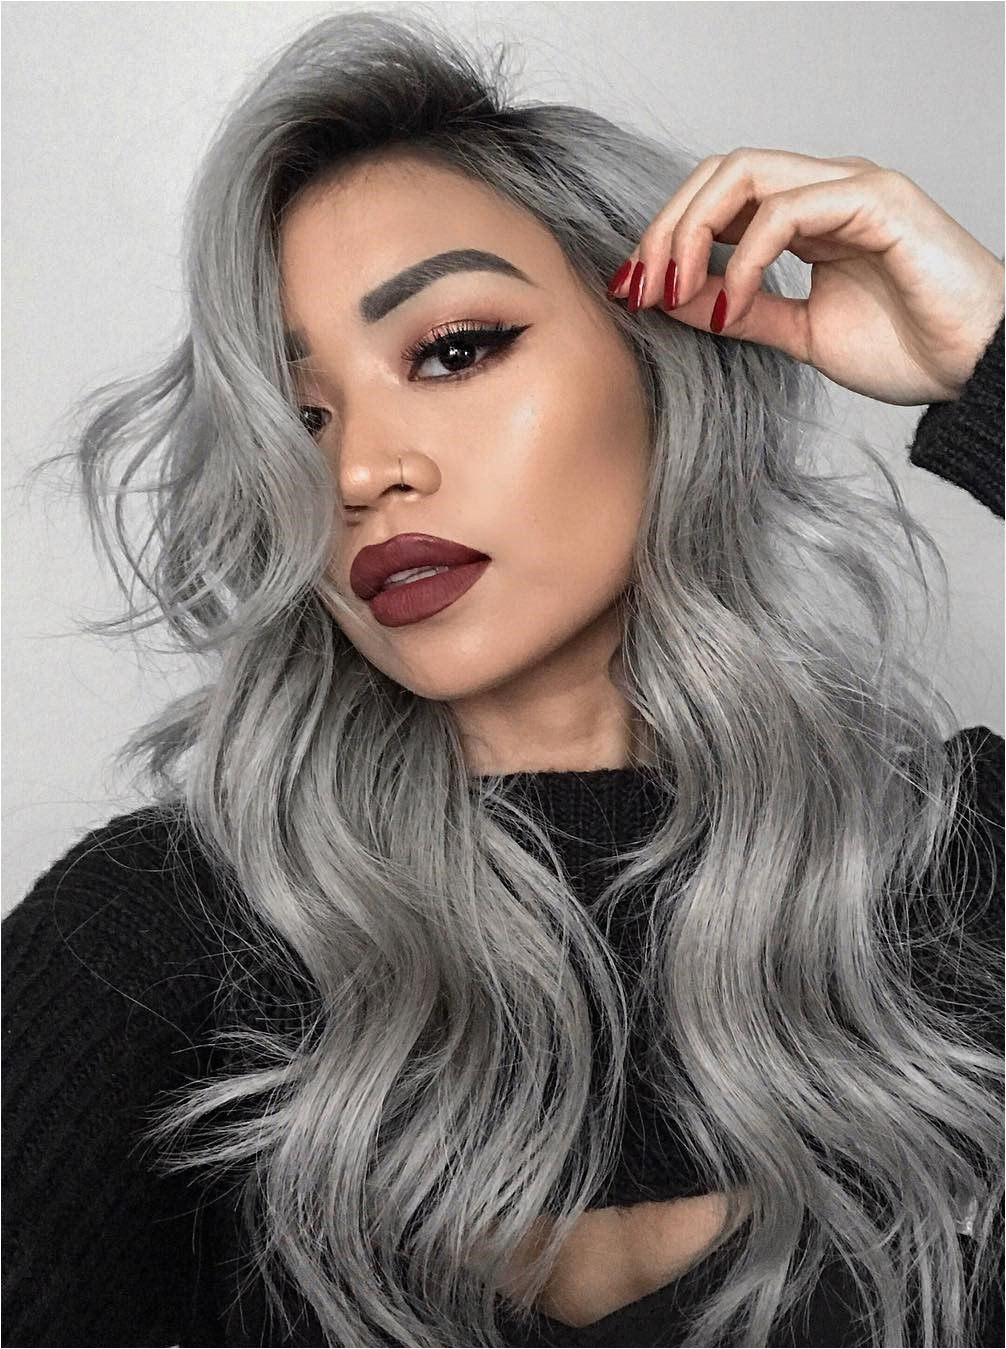 13 Grey Hair Color Ideas to Try Pinterest Unique Grey Hair with Bangs Grey Hair with